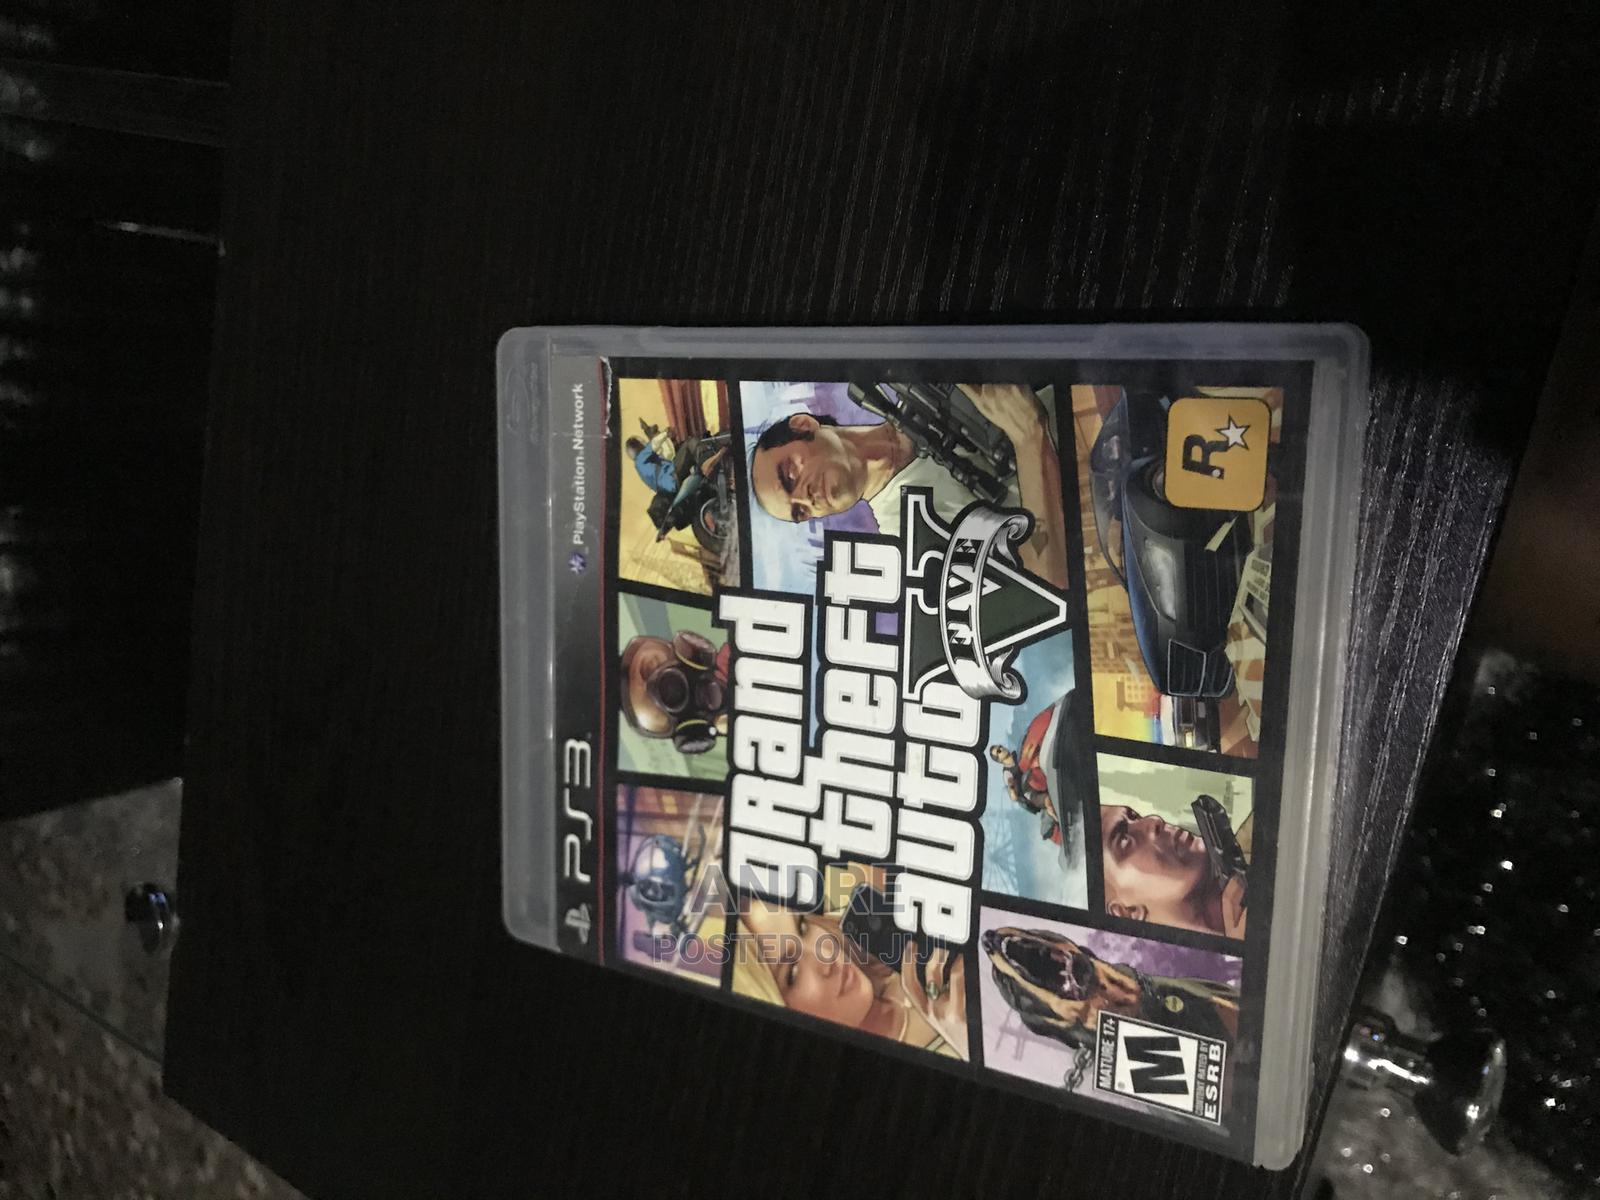 GTA v PS3 Game and Nba2k15   Video Games for sale in Calabar, Cross River State, Nigeria